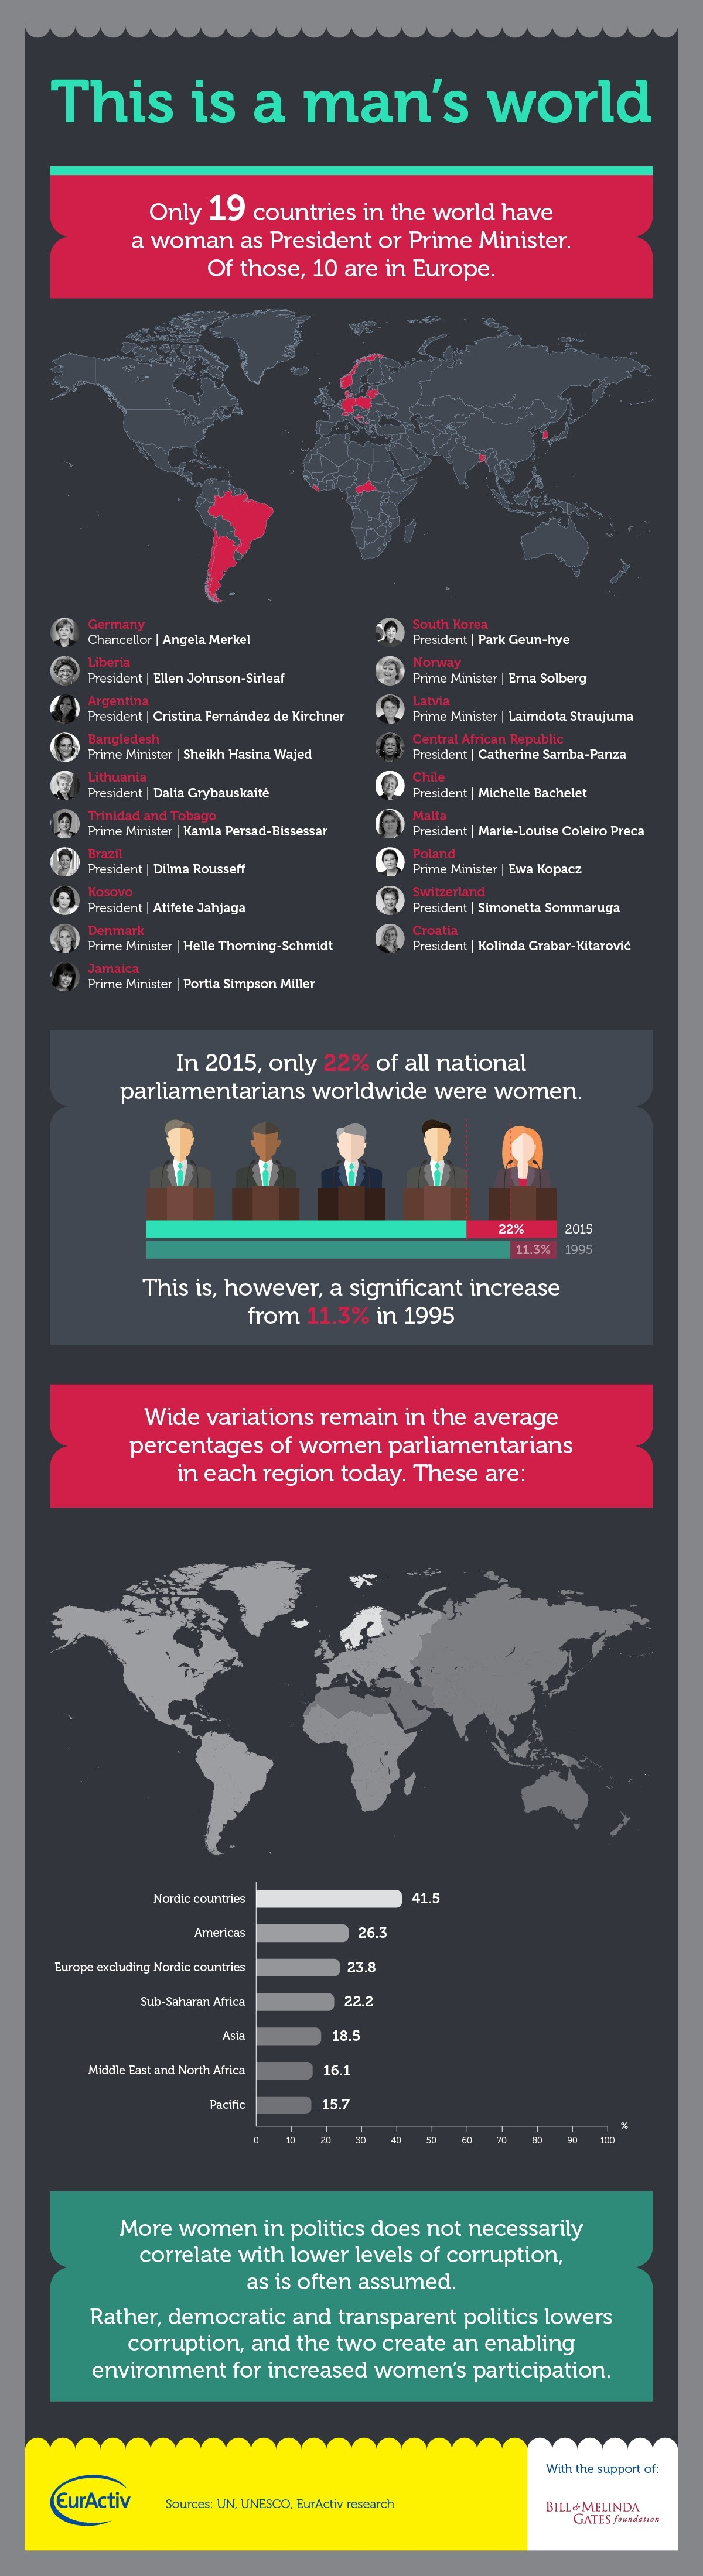 this is a man's world infographic